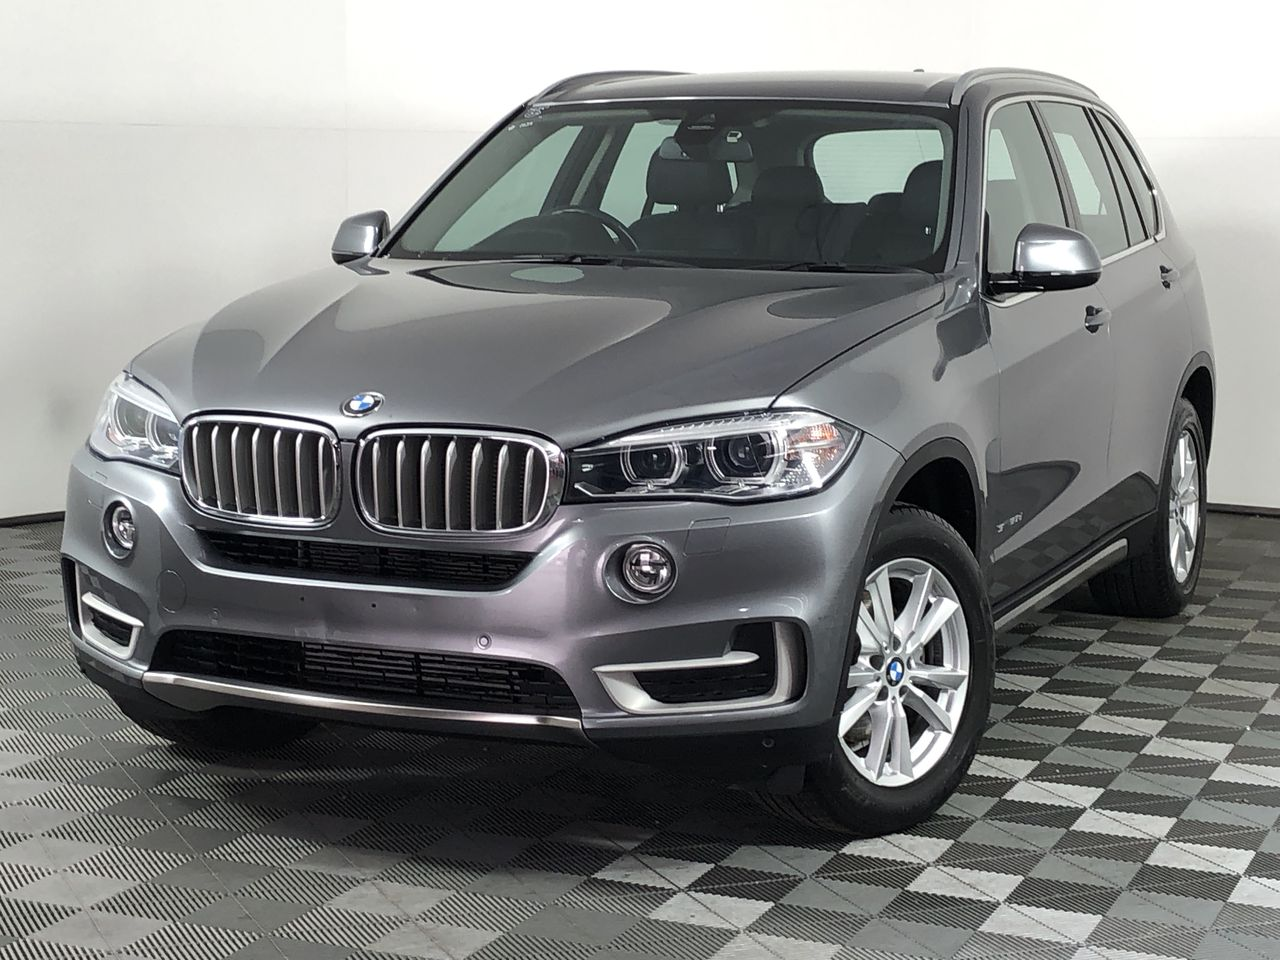 2015 BMW X5 sDrive 25d F15 Turbo Diesel Automatic - 8 Speed 7 Seats Wagon